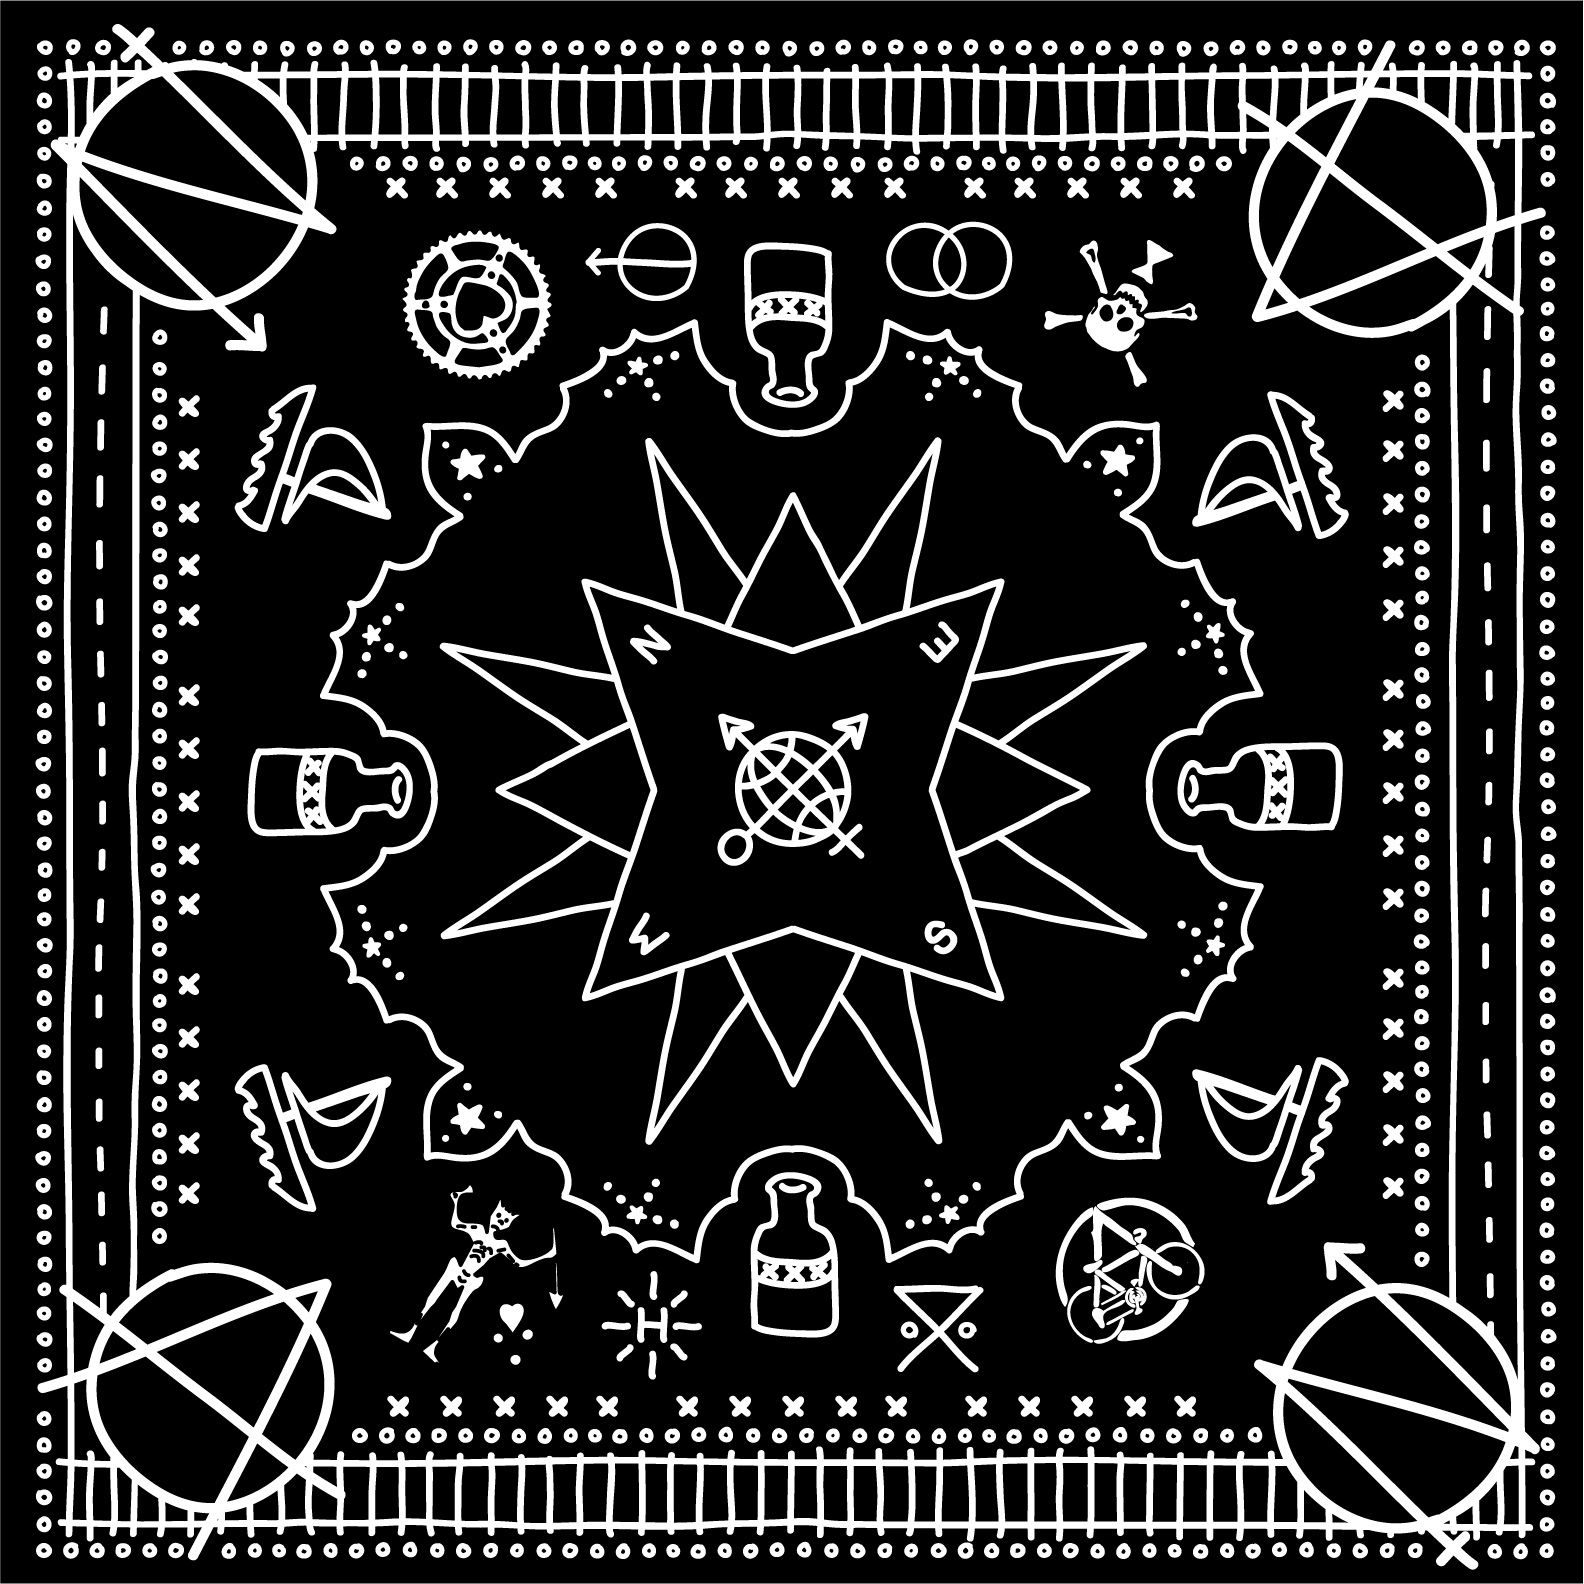 bandkerchief_stpversion-jpg.17254